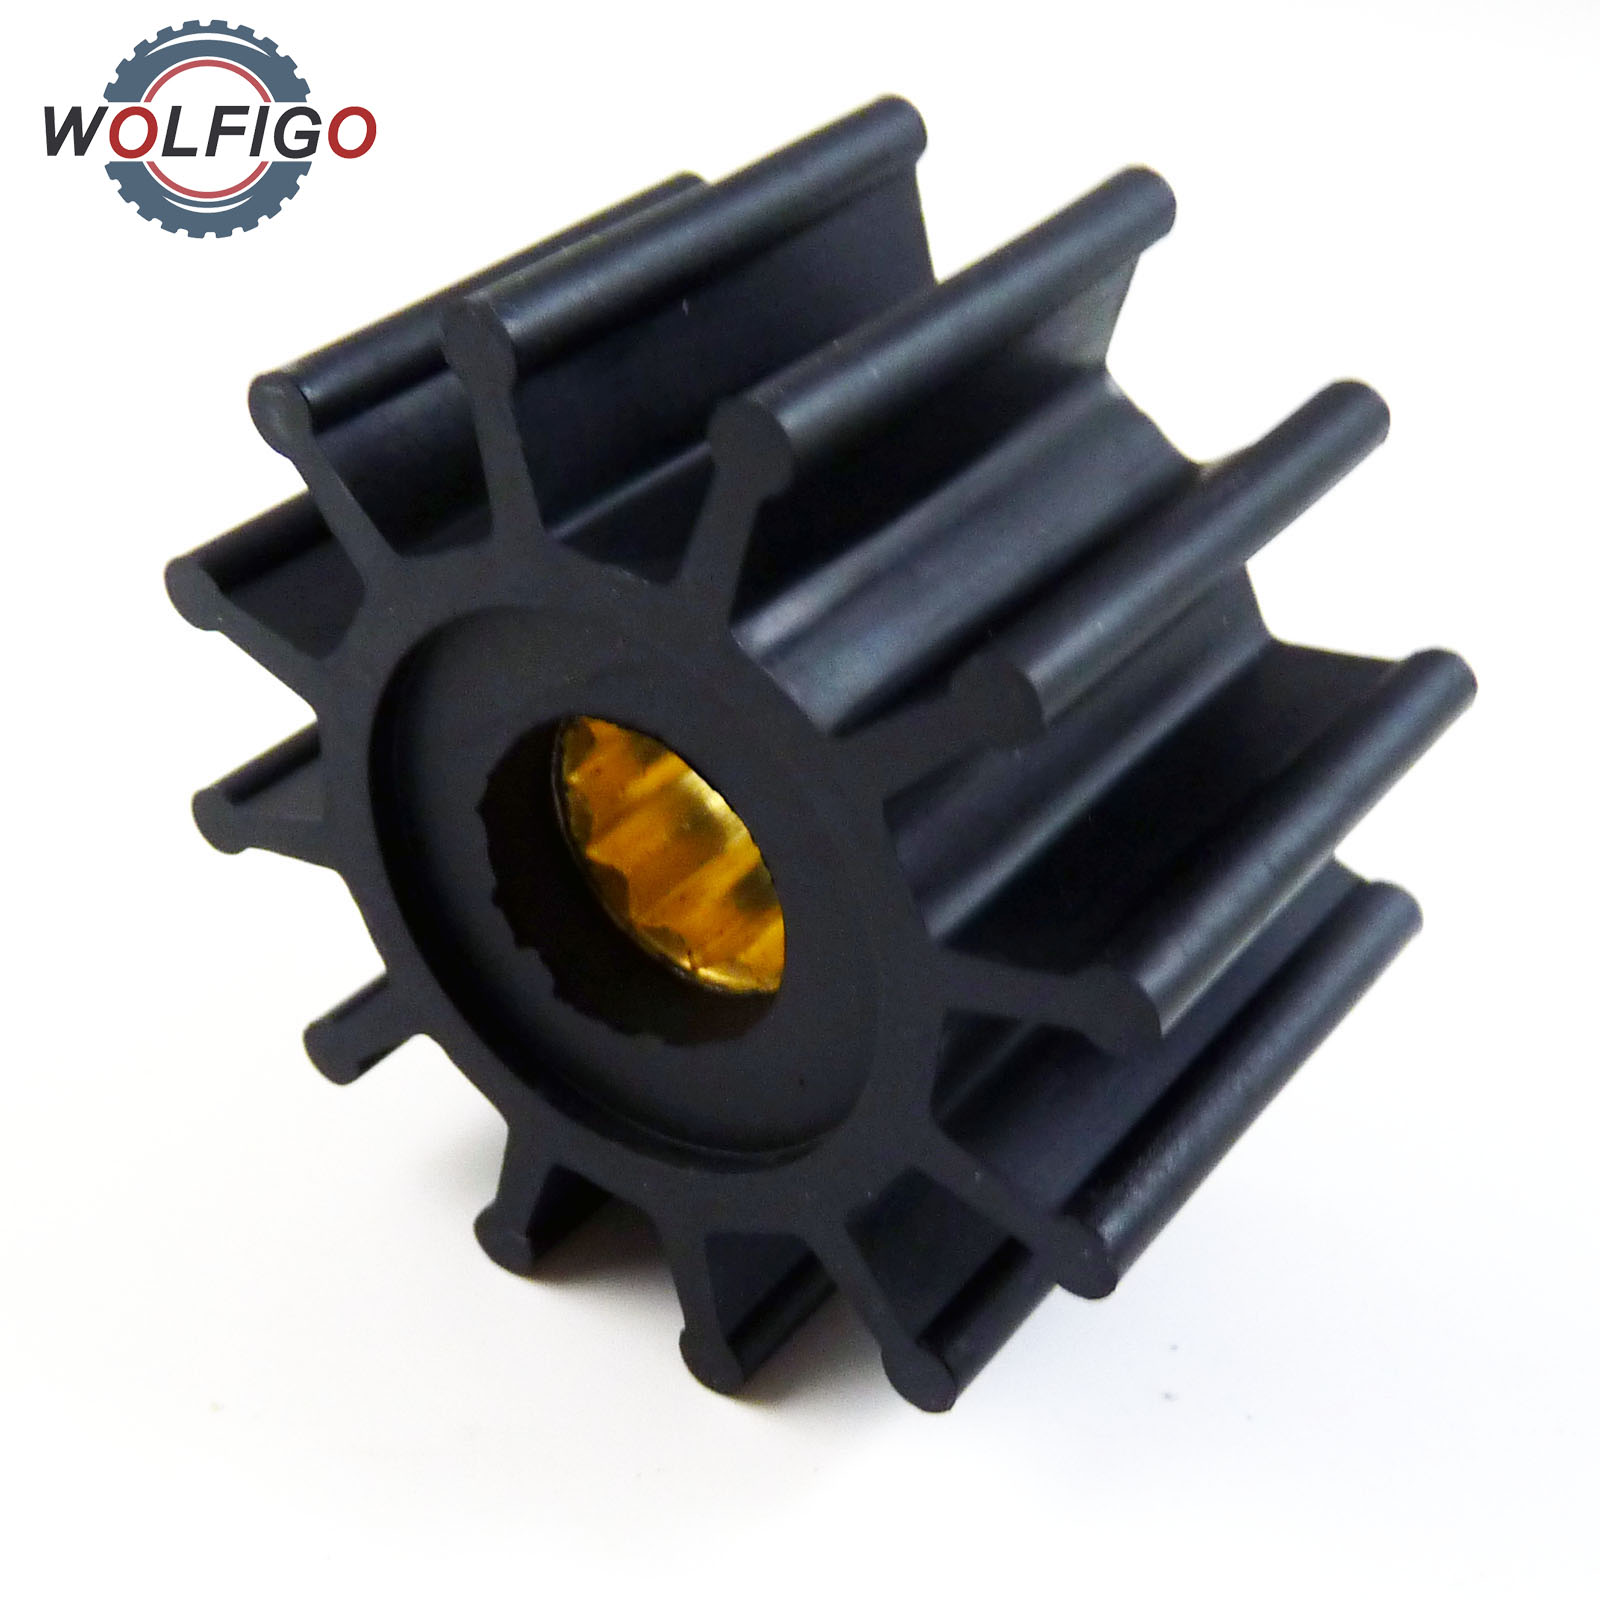 Wolfigo Water Pump Impeller Inboard Engine Cooling For Volvo Penta Aq260 Wiring Harness Omc Cobra 3862281 21951346 21951348 3855546 In Pumps From Automobiles